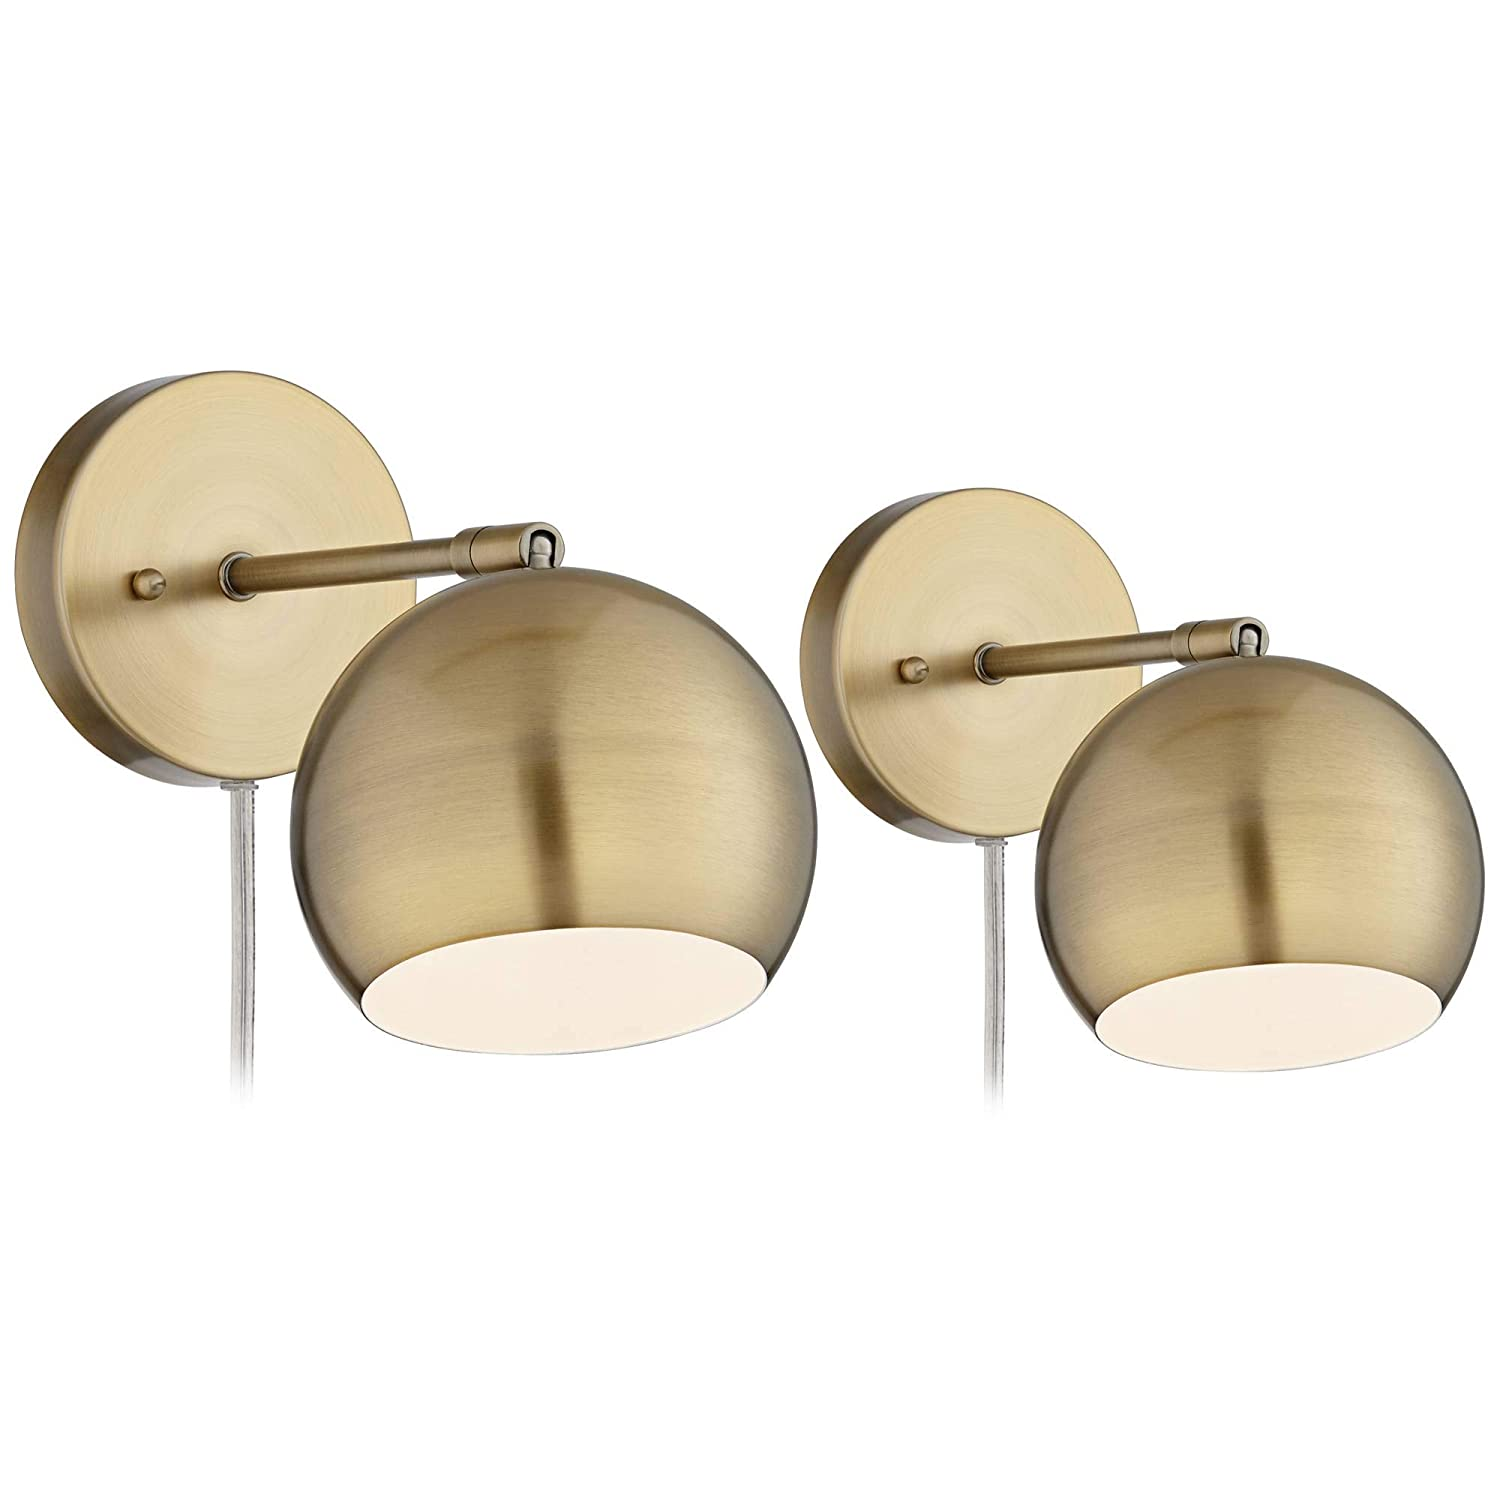 Selena Wall Lights LED Plug in Set of 2 Brass Sphere Shade Pin Up for Bedroom Living Room Reading